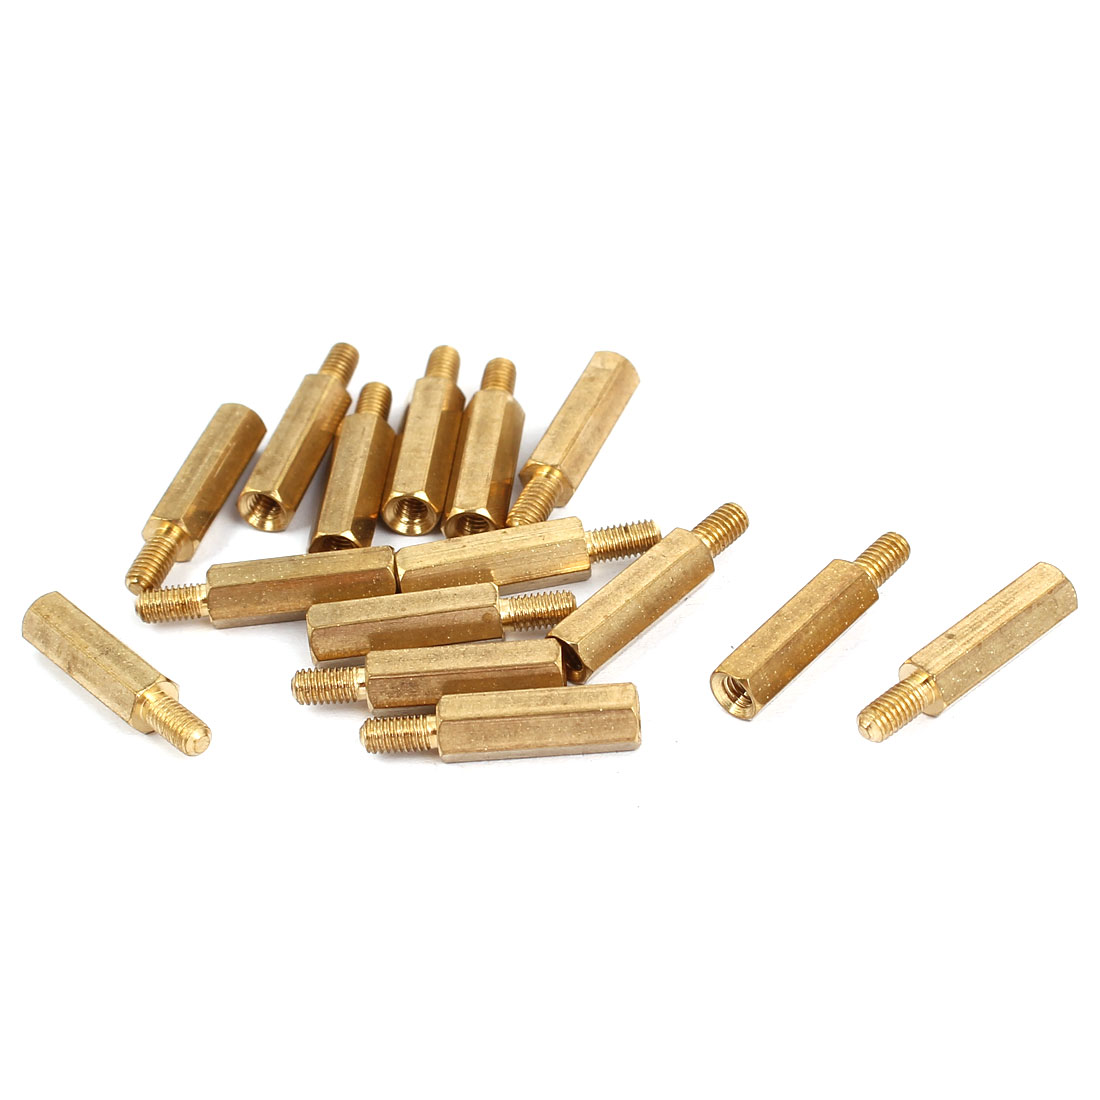 M3 Female x Male Brass Hexagonal Pillar Standoff Spacer Screws Bolt 15+6mm 15pcs